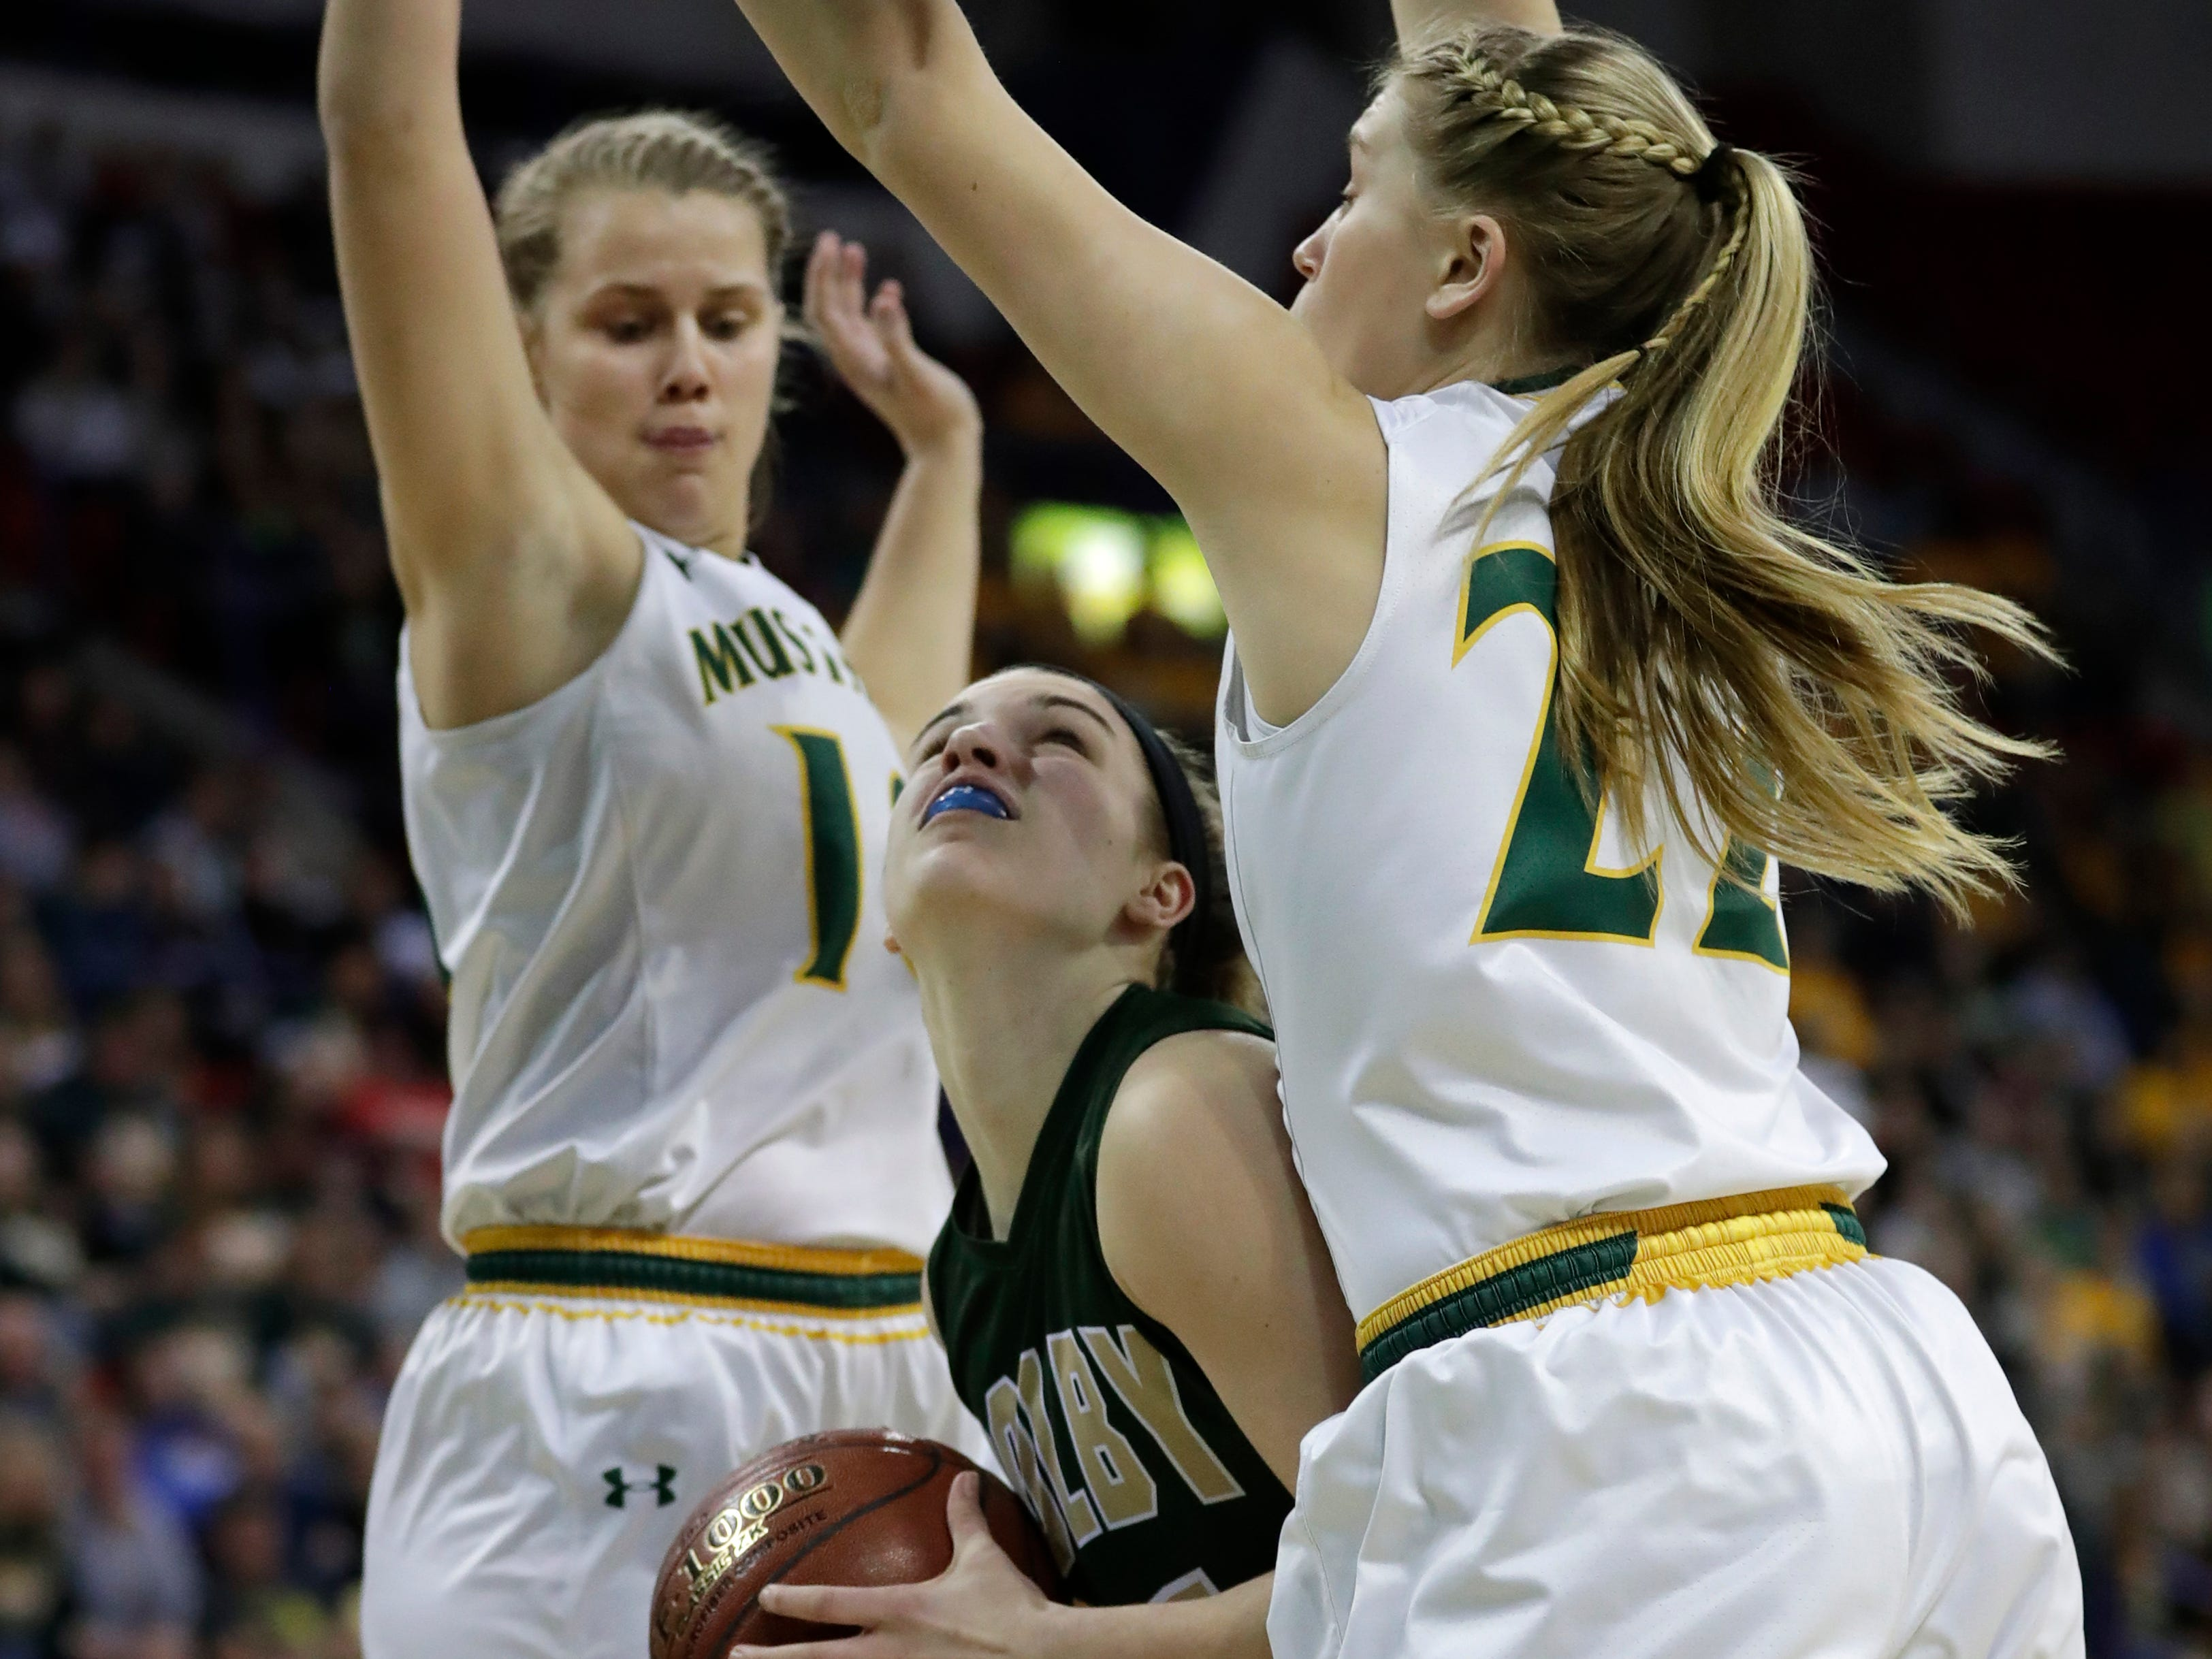 Colby's Hailey Voelker (11) puts up a shot against Melrose-Mindoro's Calette Lockington (10) and Erika Simmons (22) during their Division 4 semifinal game at the WIAA girls state basketball tournament Thursday, March 7, 2019, at the Resch Center in Ashwaubenon, Wis.